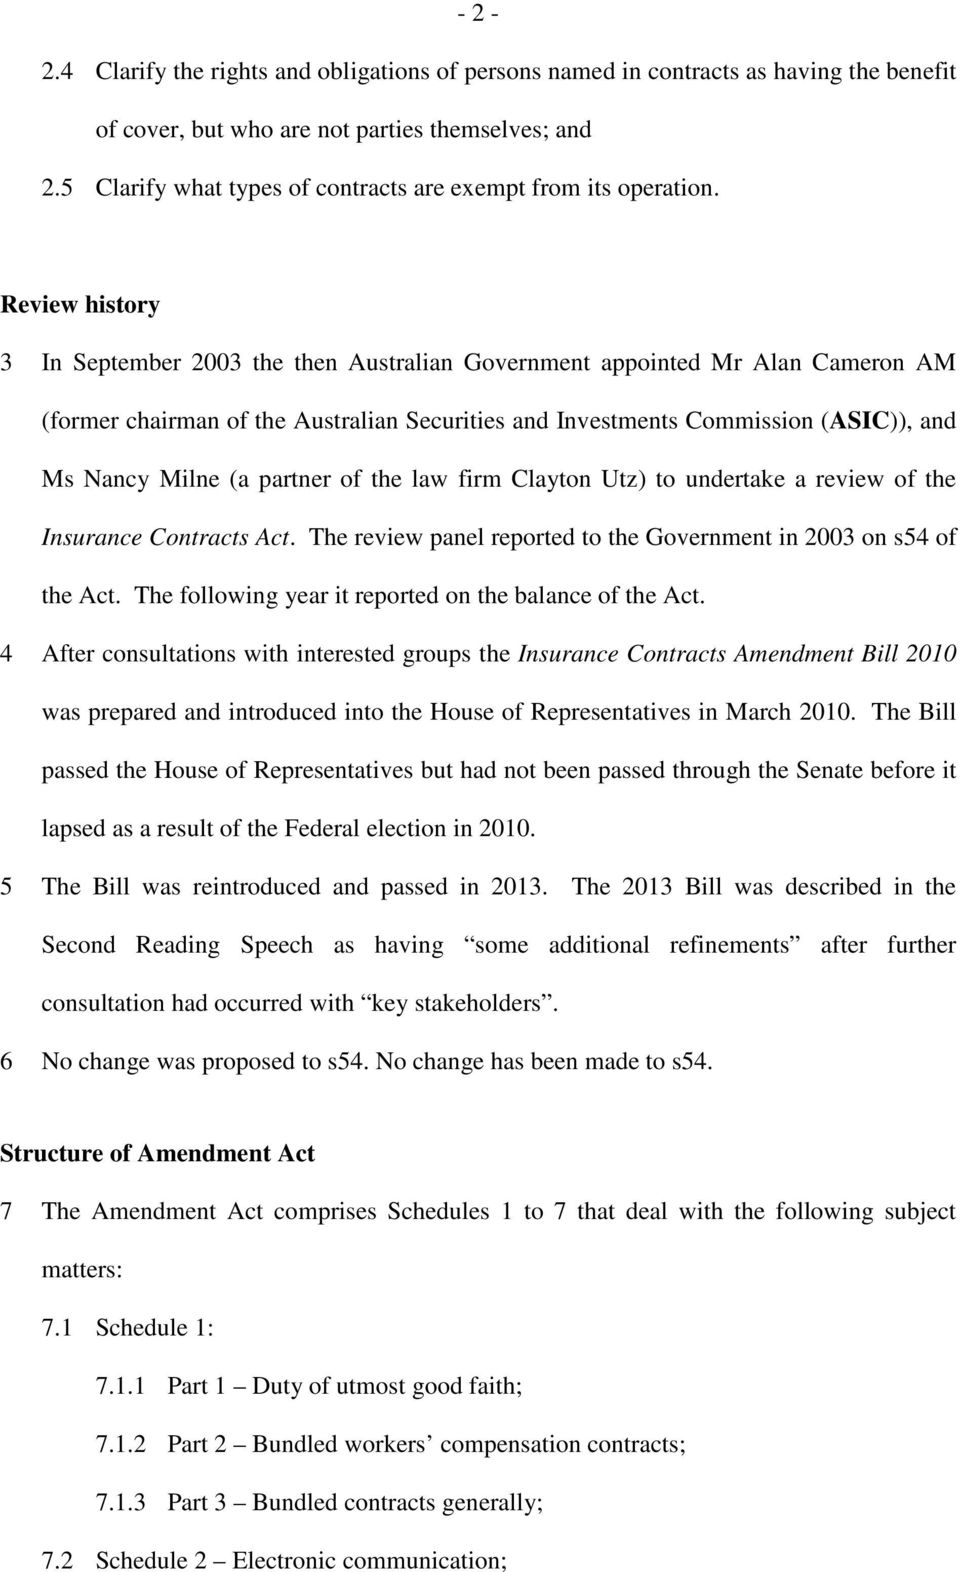 Review history 3 In September 2003 the then Australian Government appointed Mr Alan Cameron AM (former chairman of the Australian Securities and Investments Commission (ASIC)), and Ms Nancy Milne (a